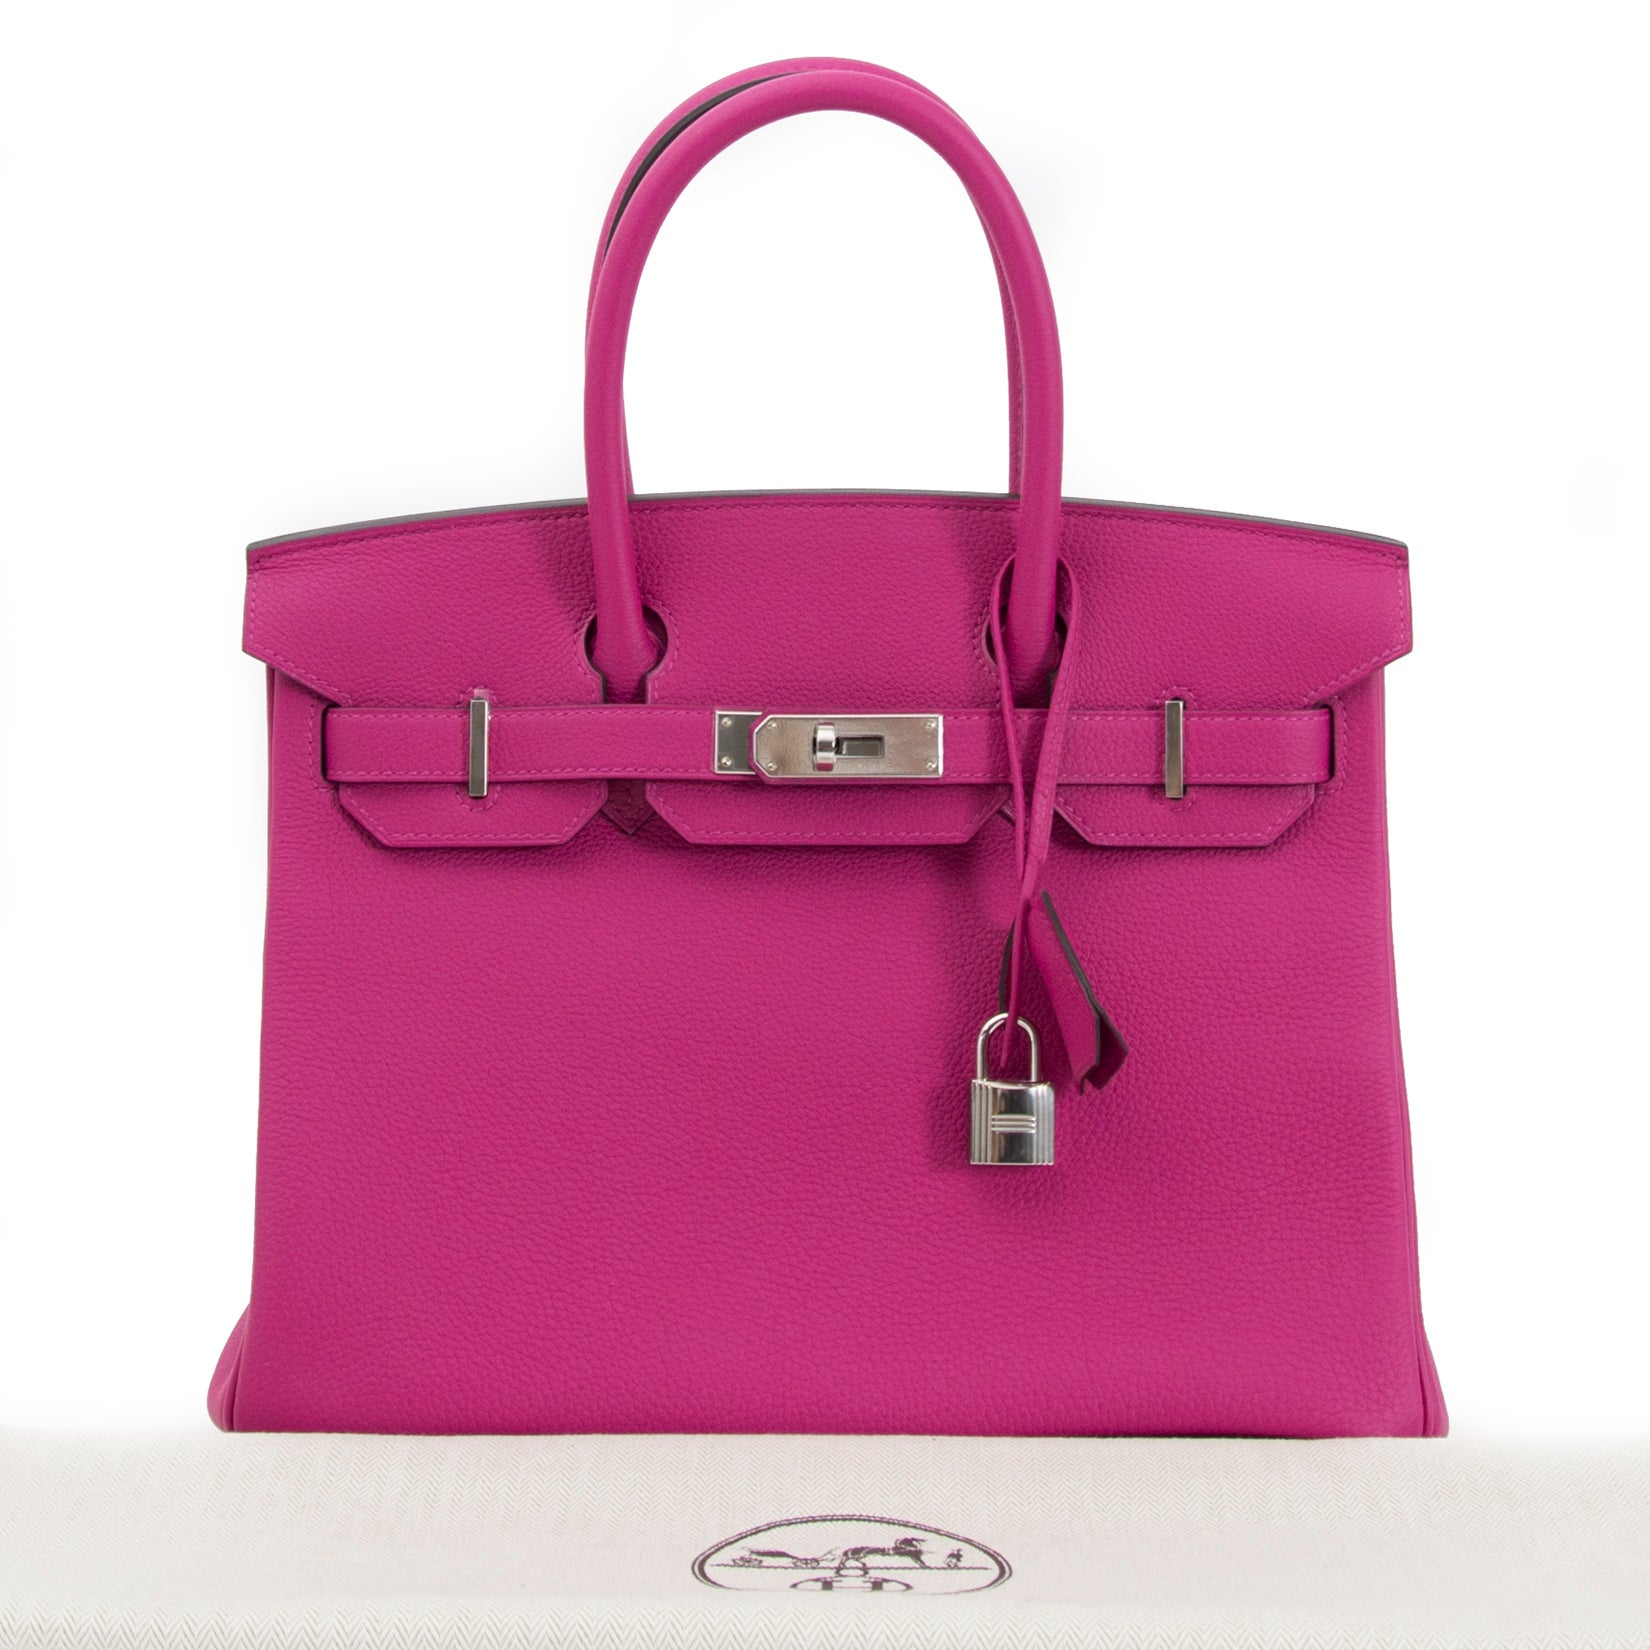 5ae2cee4308d Hermès Birkin 30 Togo Rose Pourpre PHW For Sale at 1stdibs